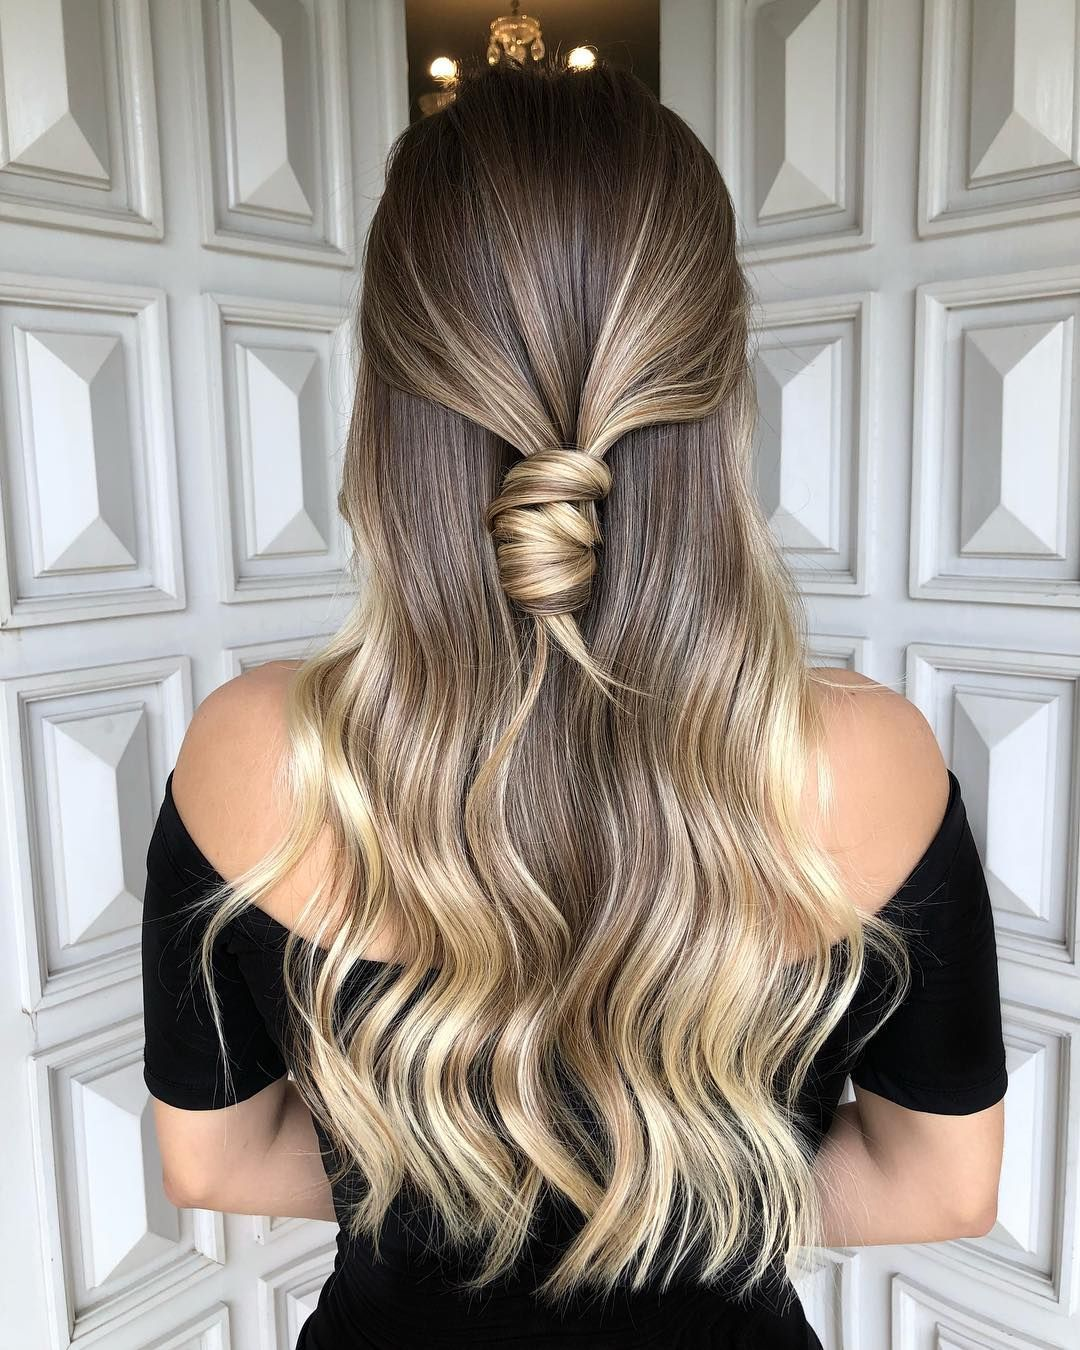 Ombre Hairstyles Entrancing 50 Hottest Ombre Hair Color Ideas For 2018  Ombre Hairstyles